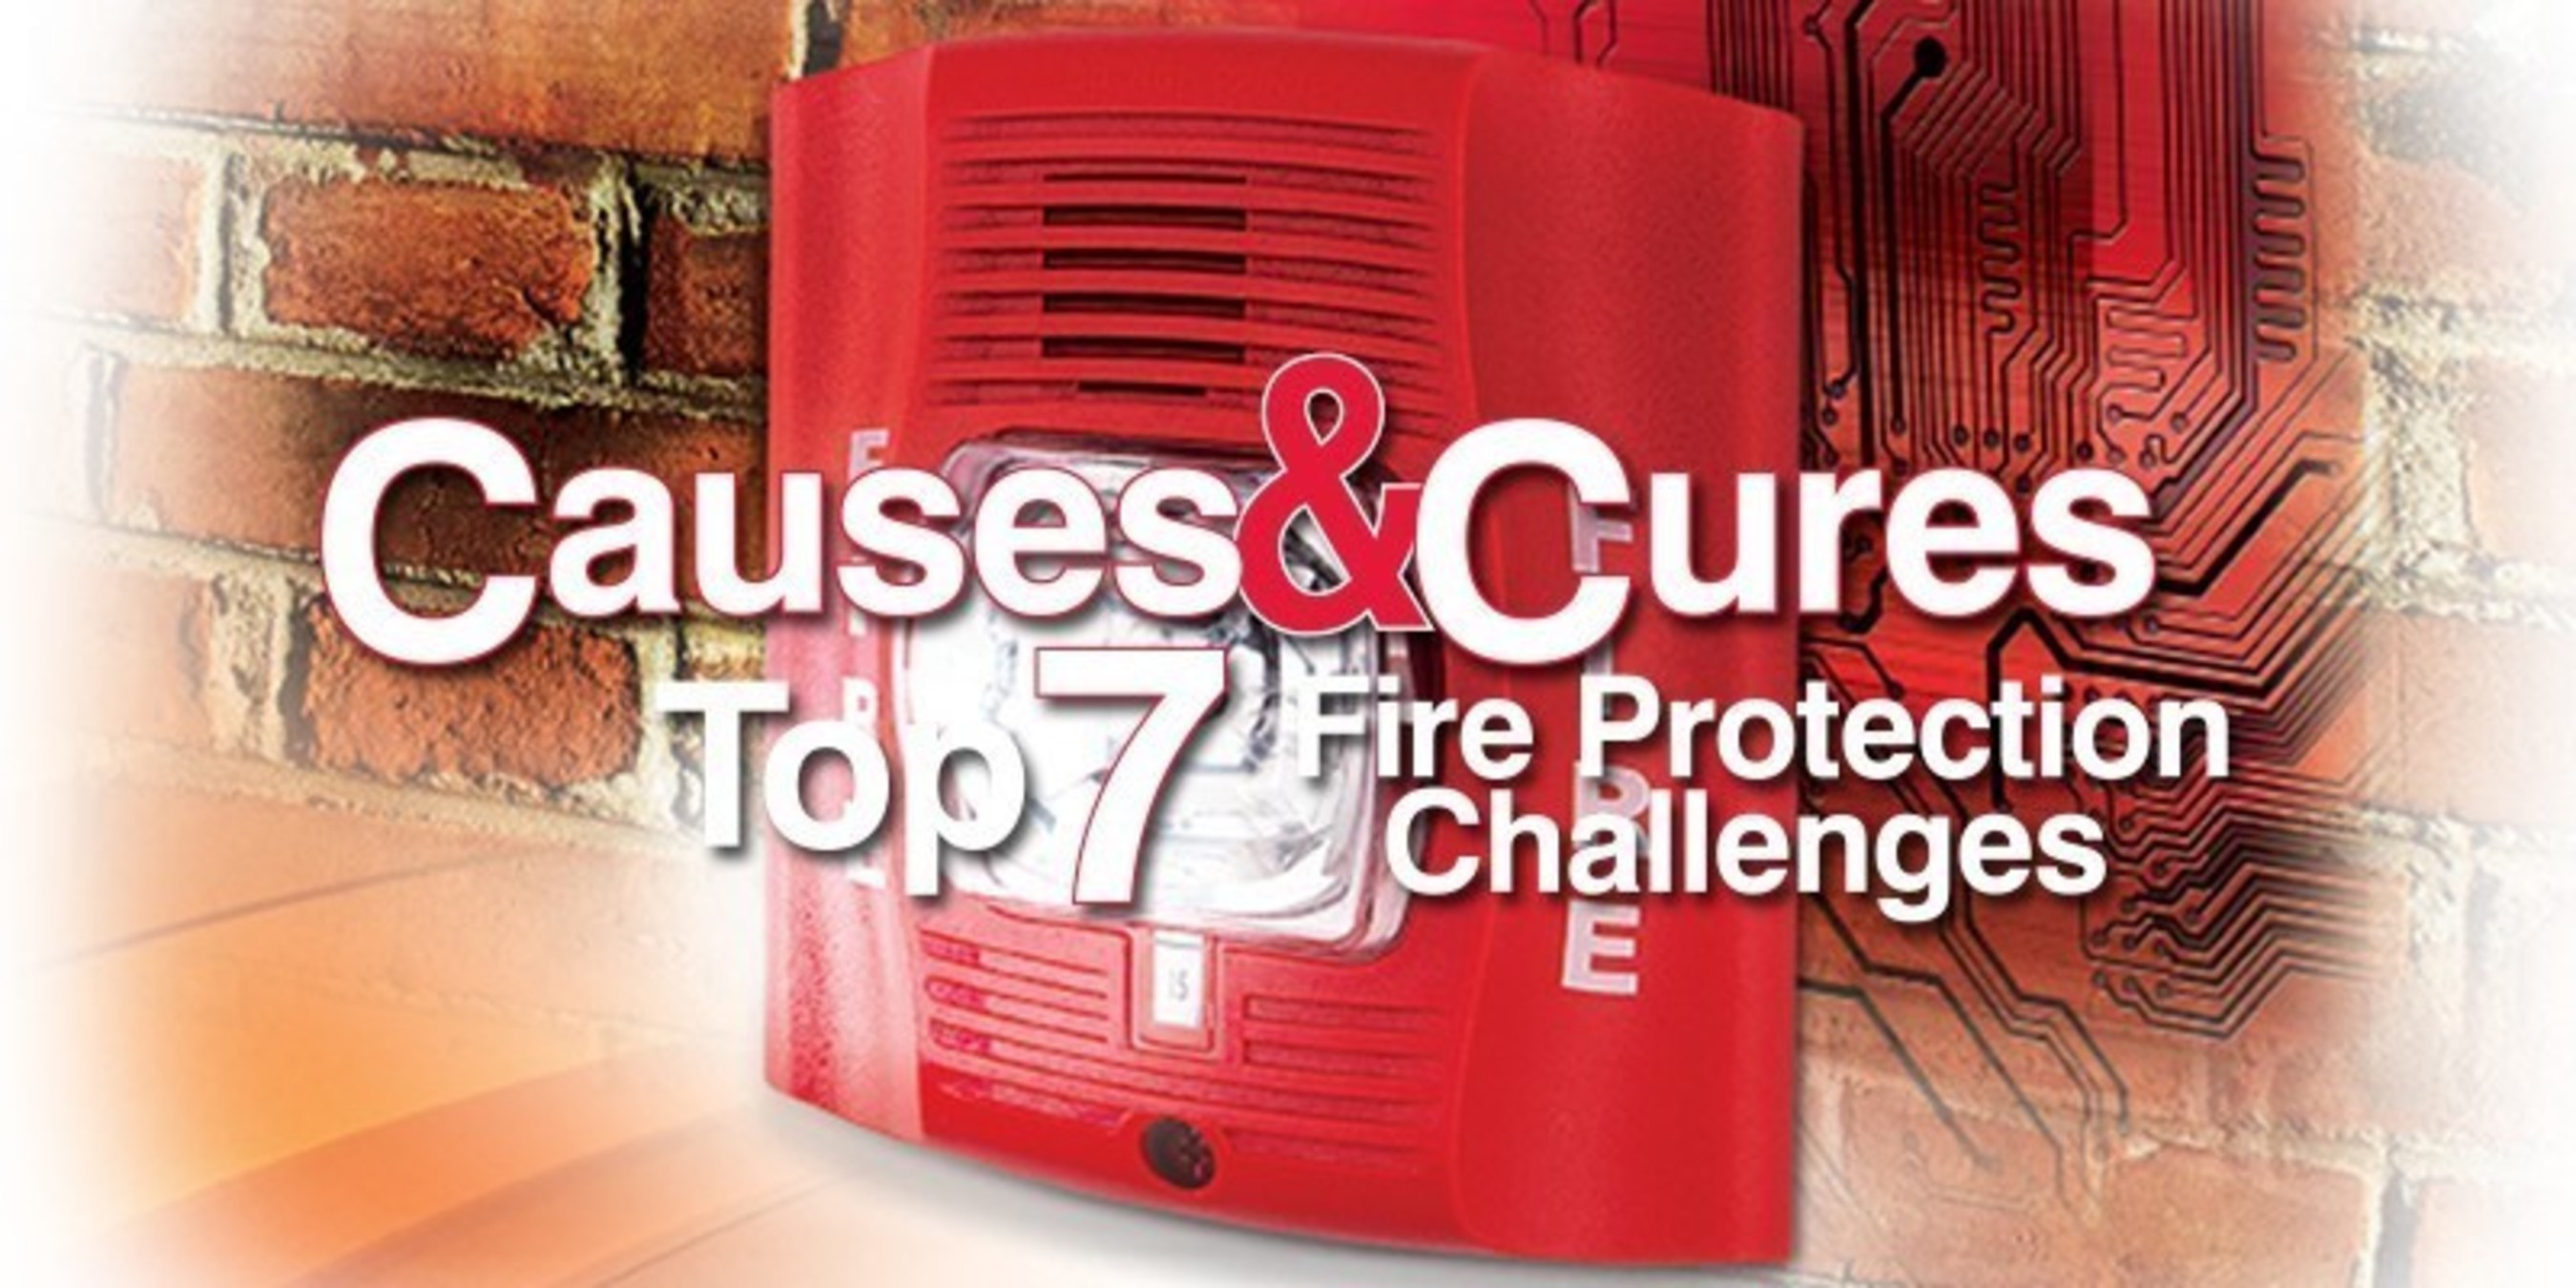 ORR Protection Systems Announces 2016 Seminar Series: Causes and Cures for the Top 7 Fire